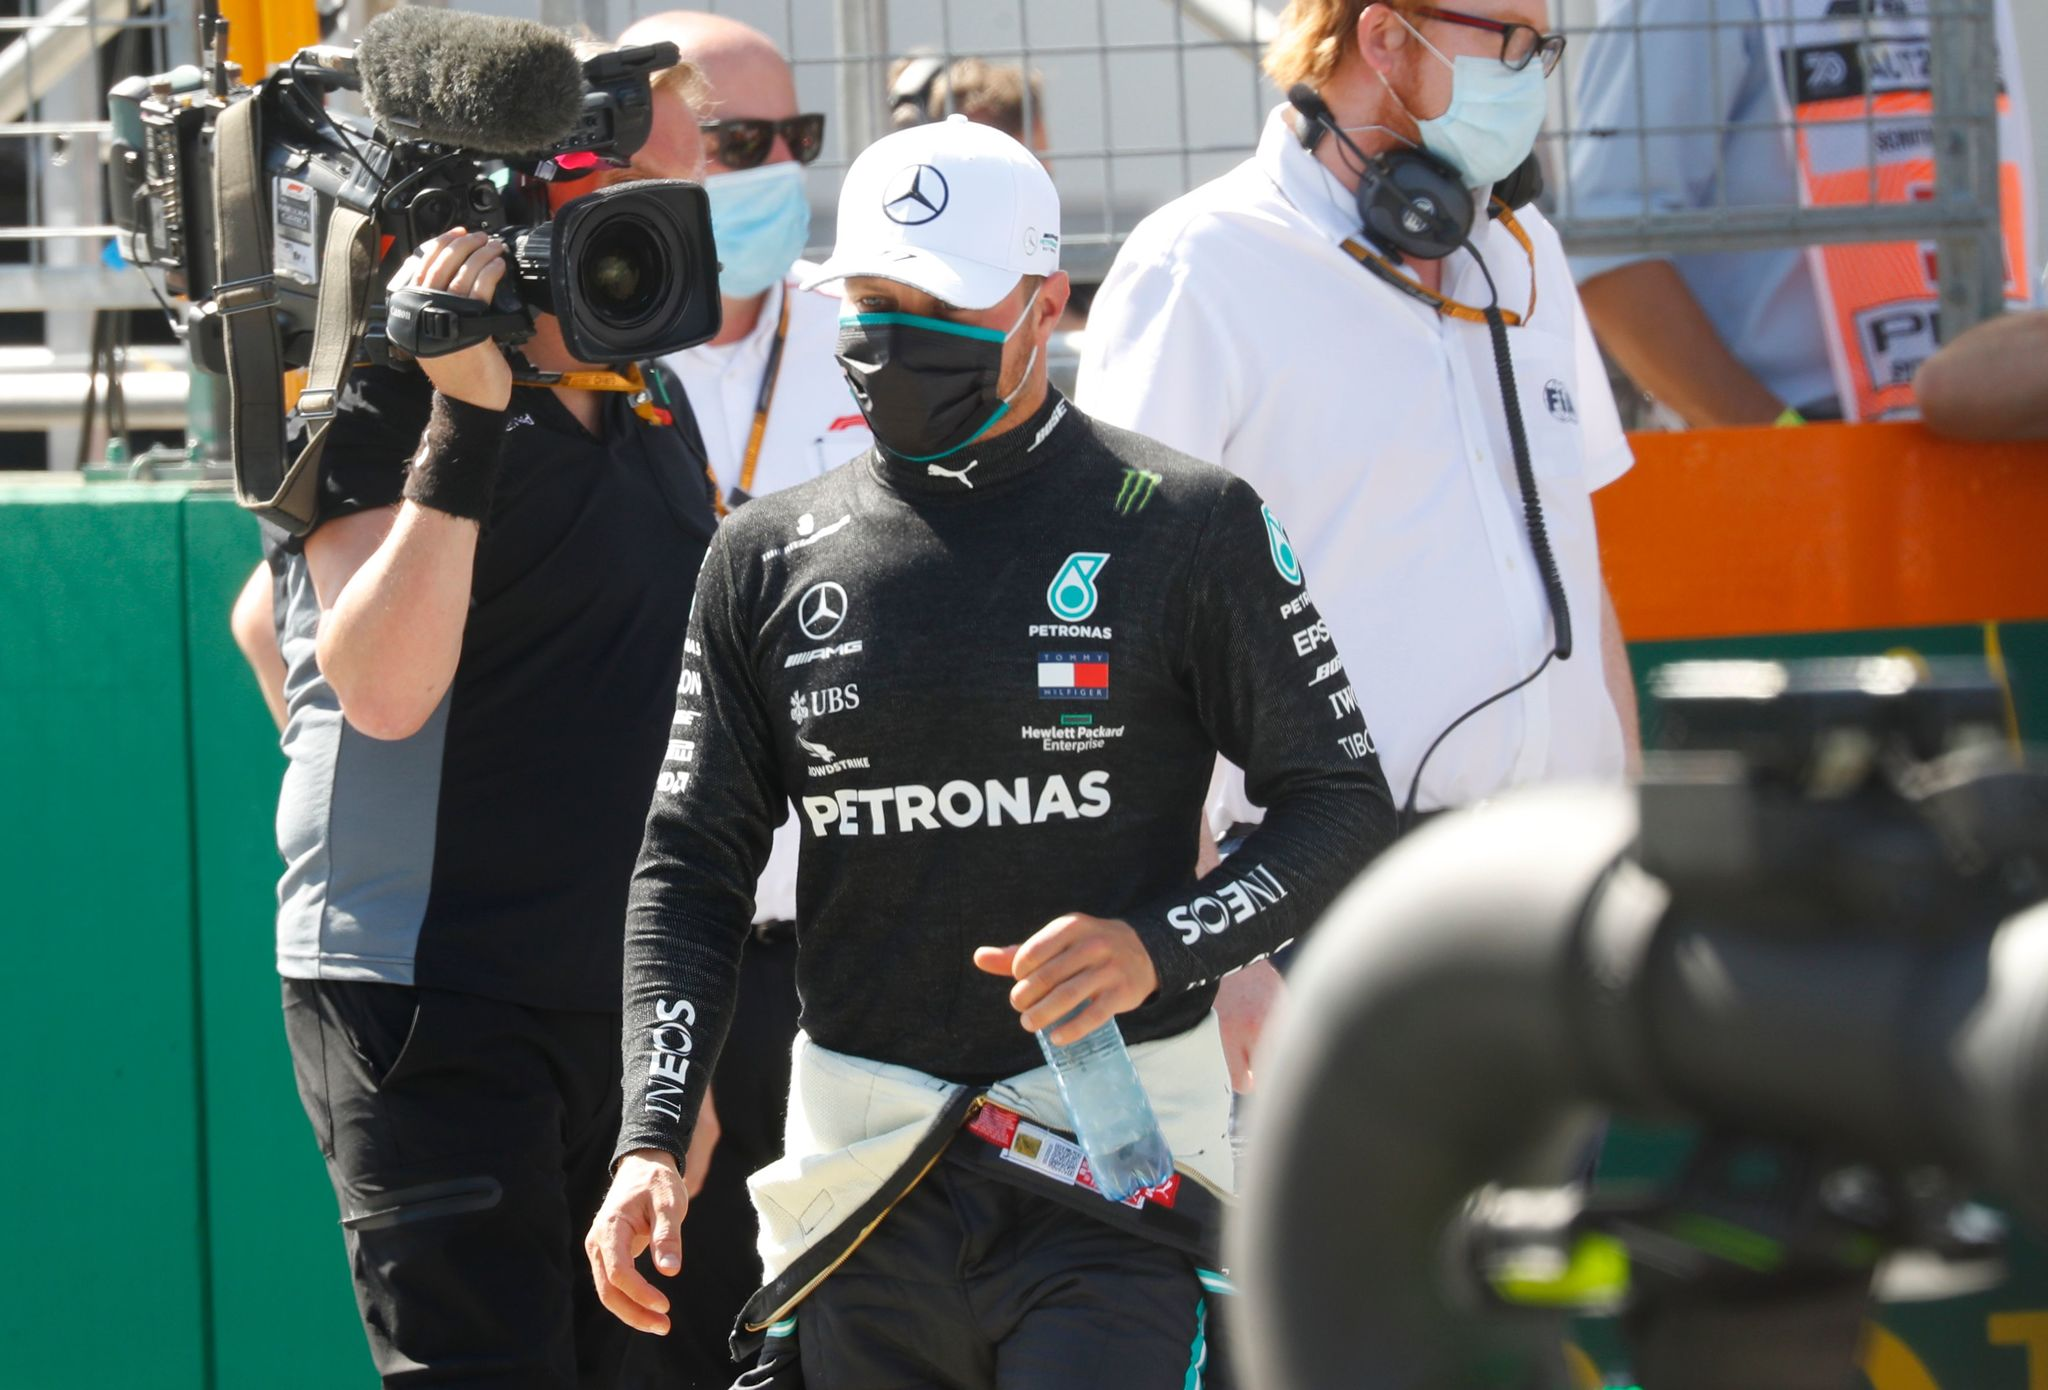 Mercedes Finnish driver Valtteri Bottas reacts after the qualifying round at the Austrian Formula One Grand Prix on July 4, 2020 in lt;HIT gt;Spielberg lt;/HIT gt;, Austria. - Seven months after they last competed in earnest, the Formula One circus will push a post-lockdown 're-set' button to open the 2020 season in Austria on July 5. (Photo by LEONHARD FOEGER / POOL / AFP)